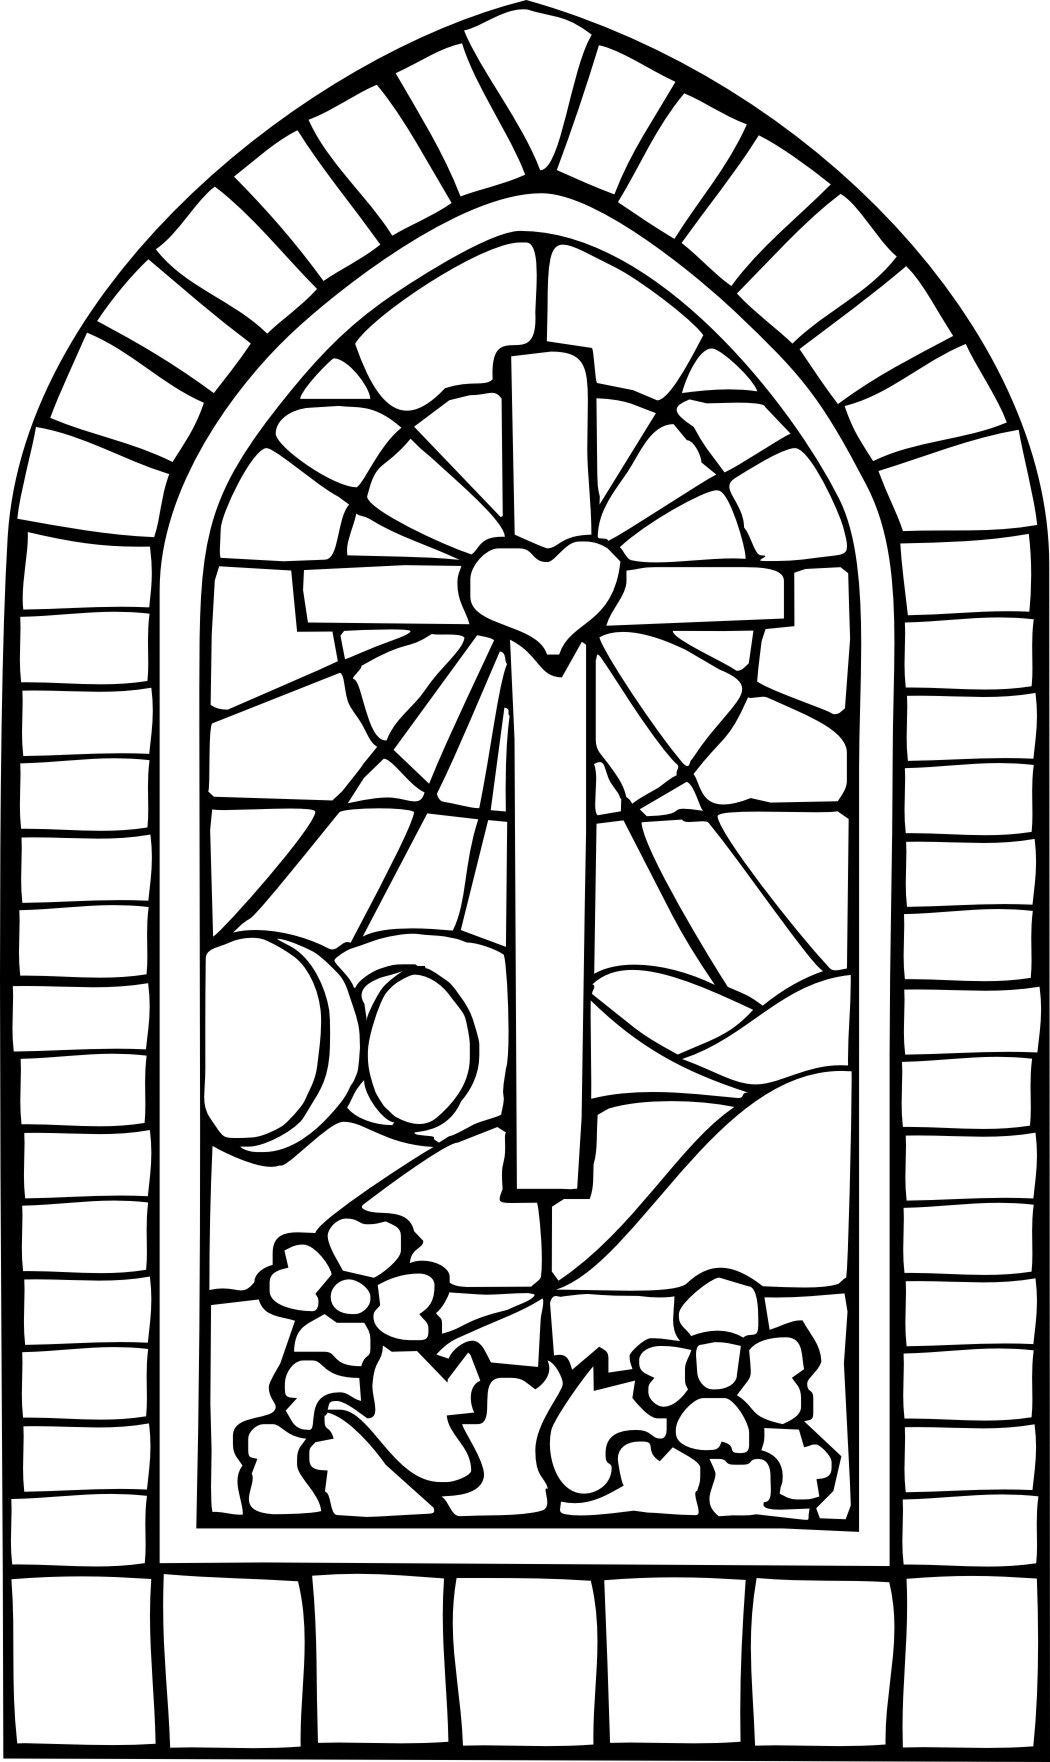 stained glass cross coloring page dibujos para colorear de cruces de mayo coloring glass page stained cross